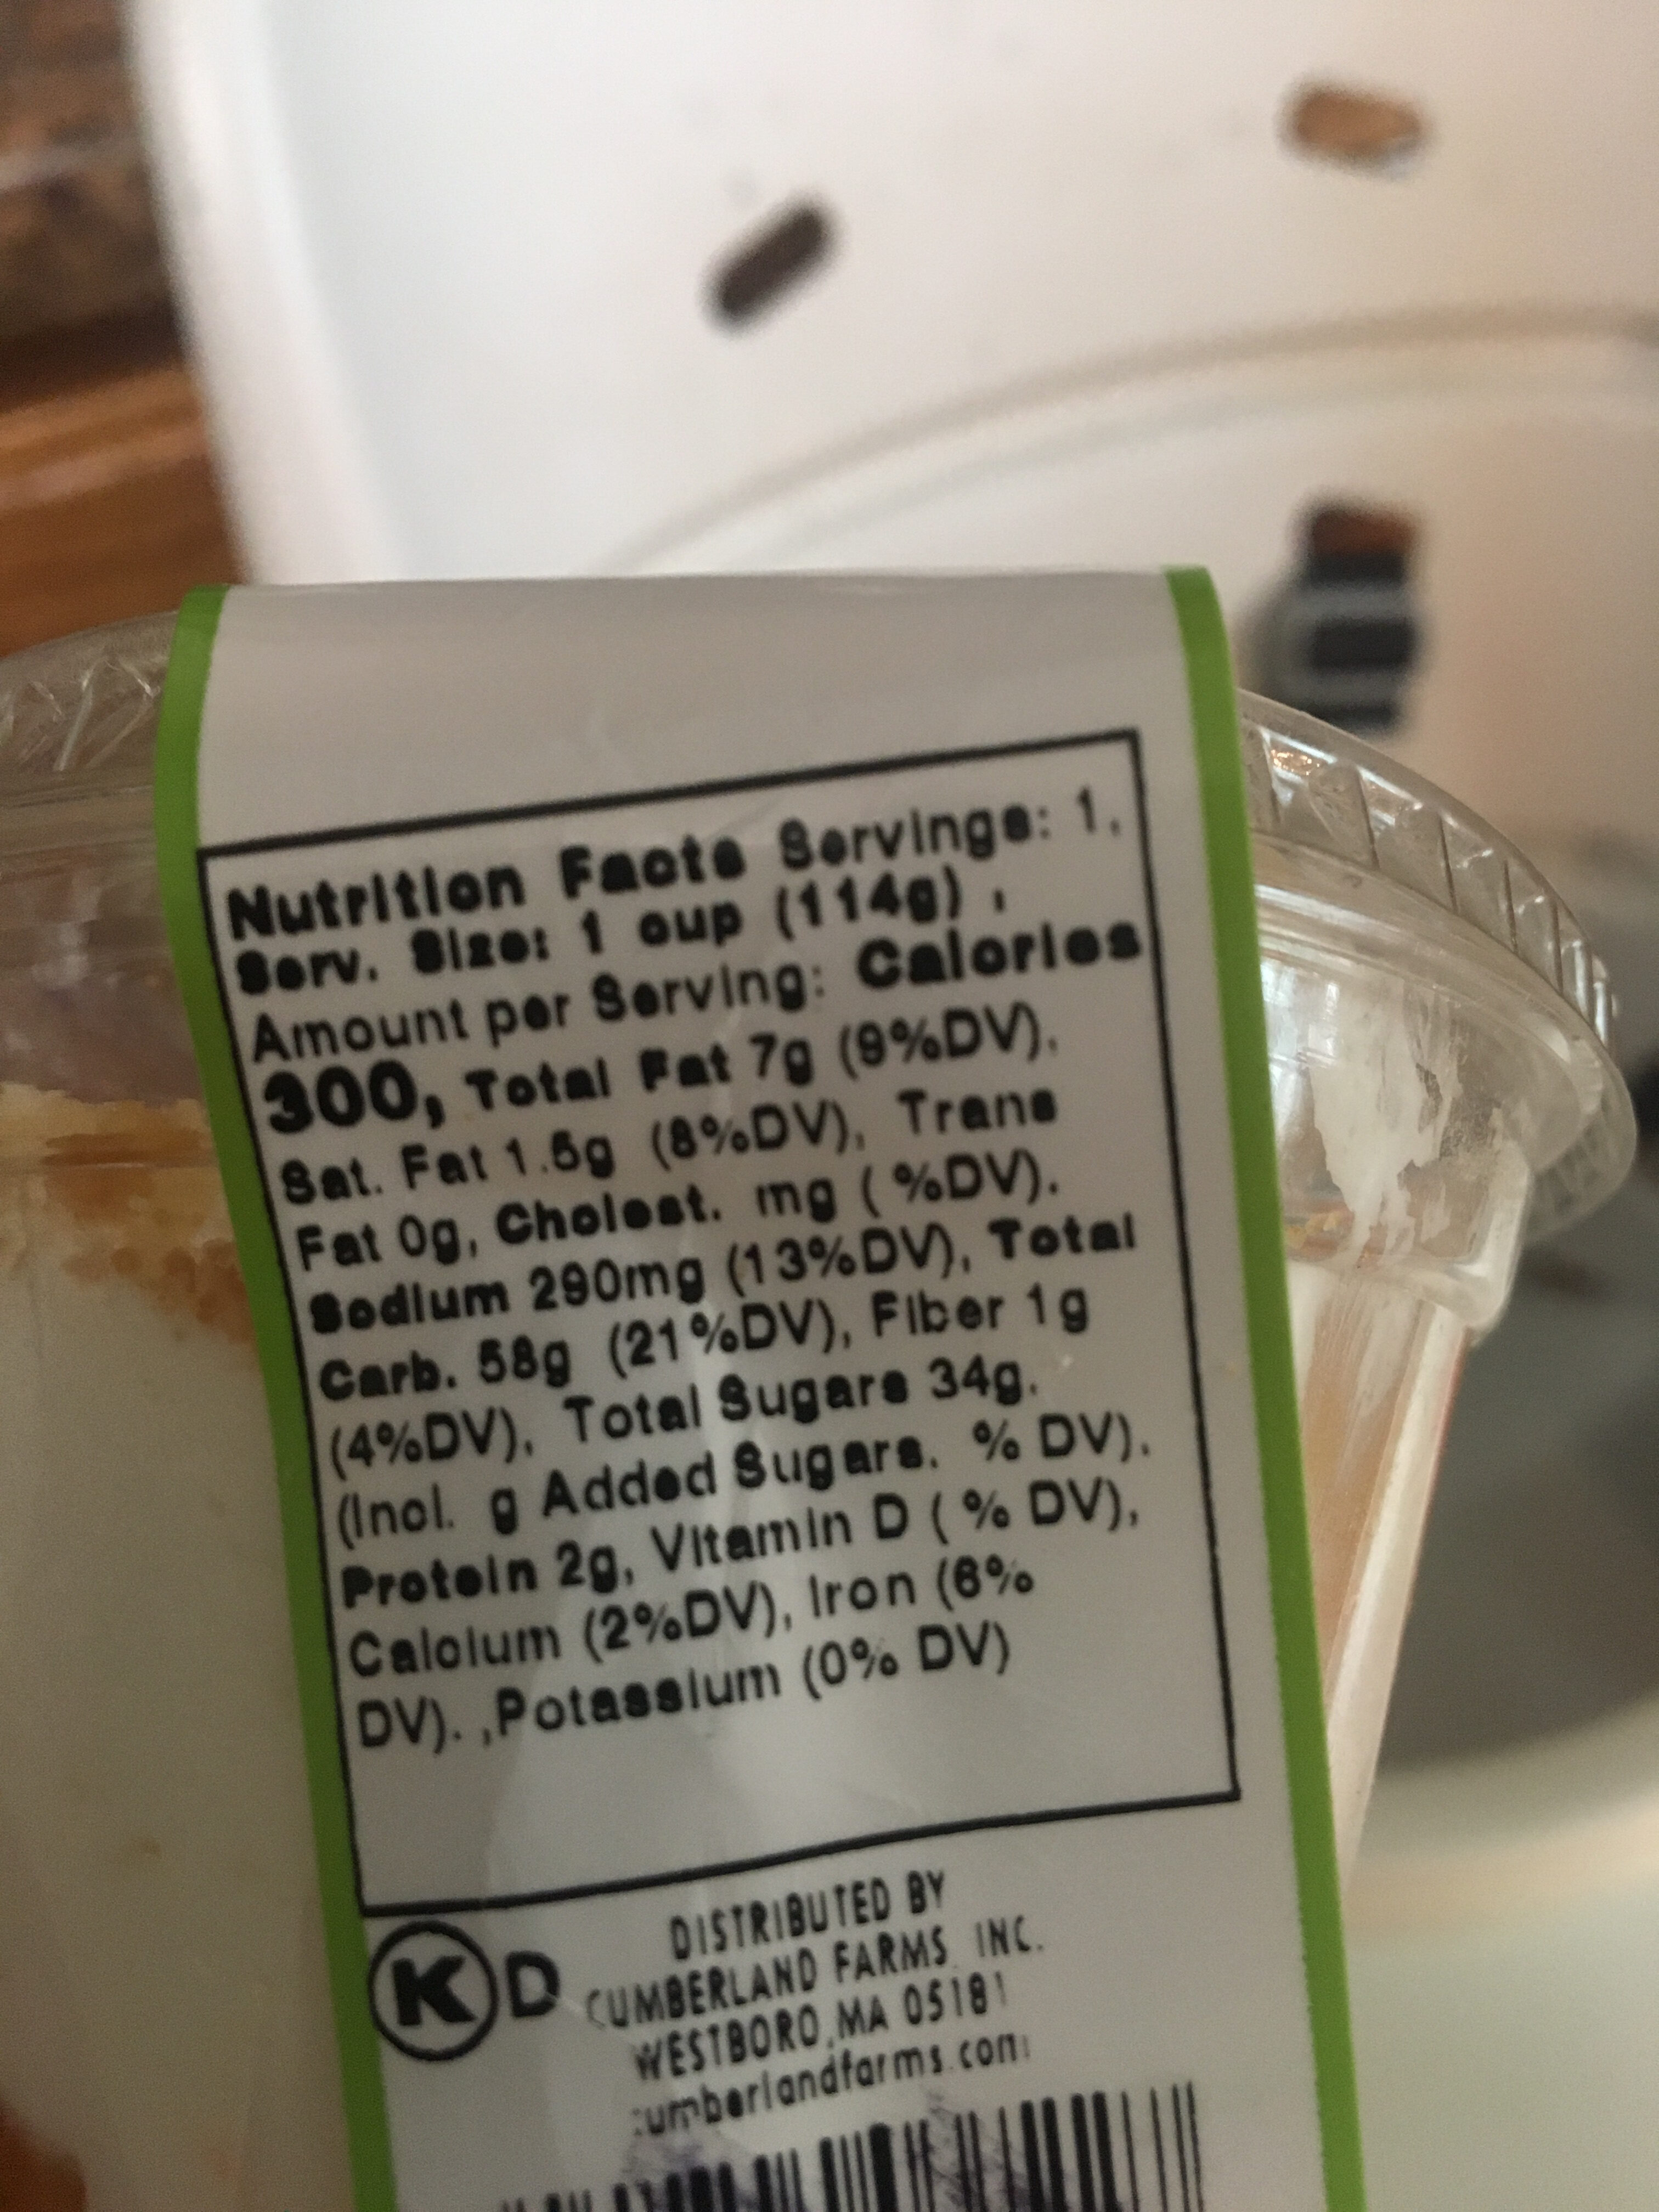 Cake N' Cup strawberry - Nutrition facts